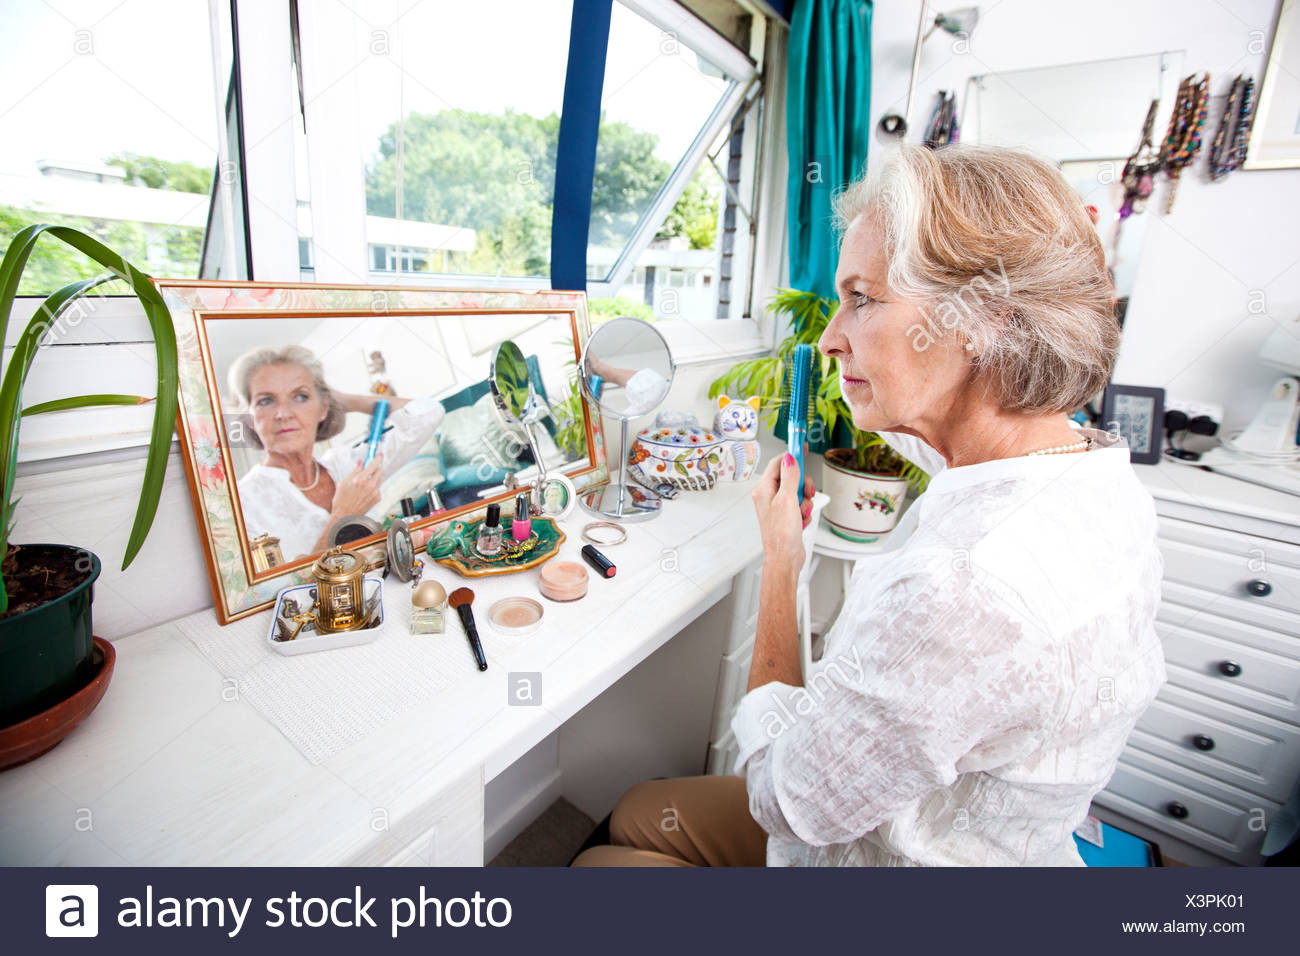 Senior woman combing her hair dresser house - Stock Image